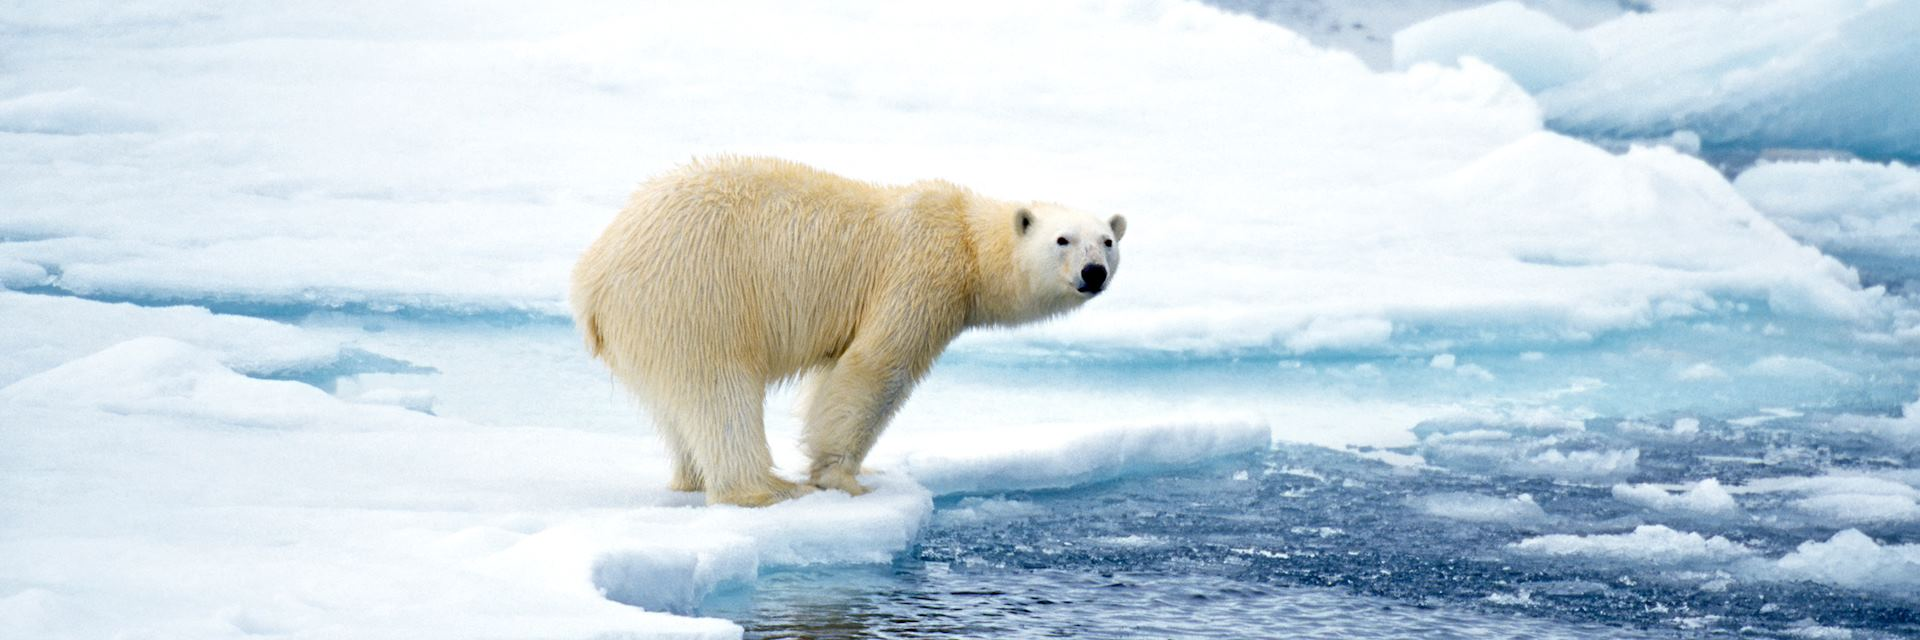 Polar bear in Arctic Canada